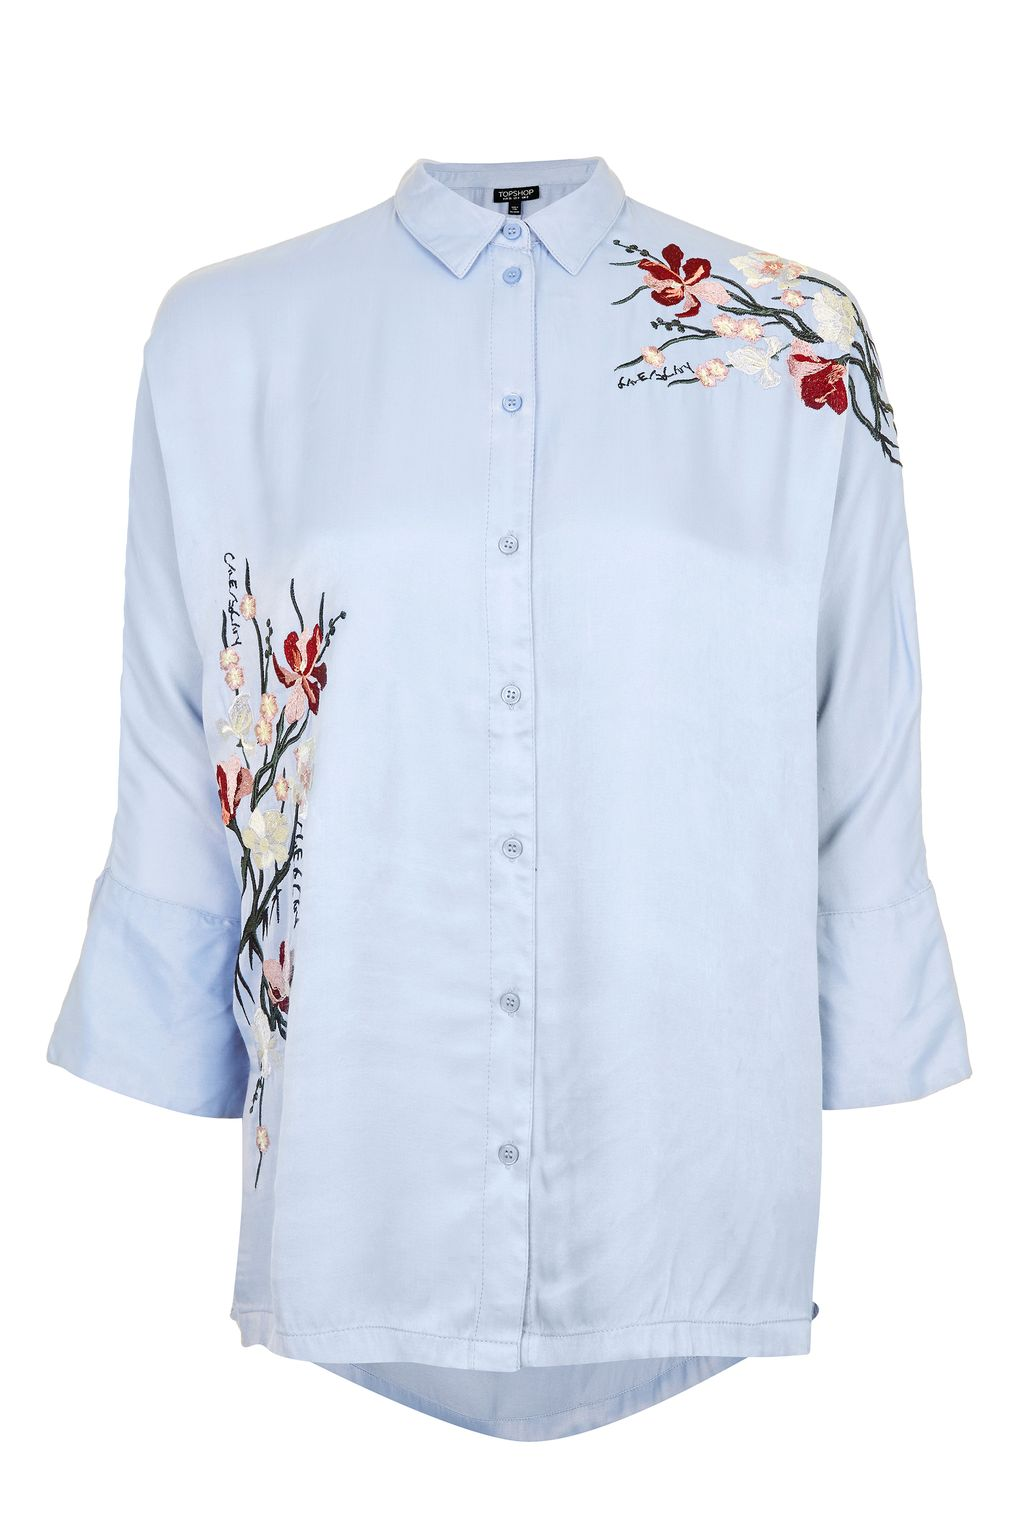 embroidered shirts tokyo fusion embroidered shirt - the wide leg crops - we love - topshop usa IZAPOXW